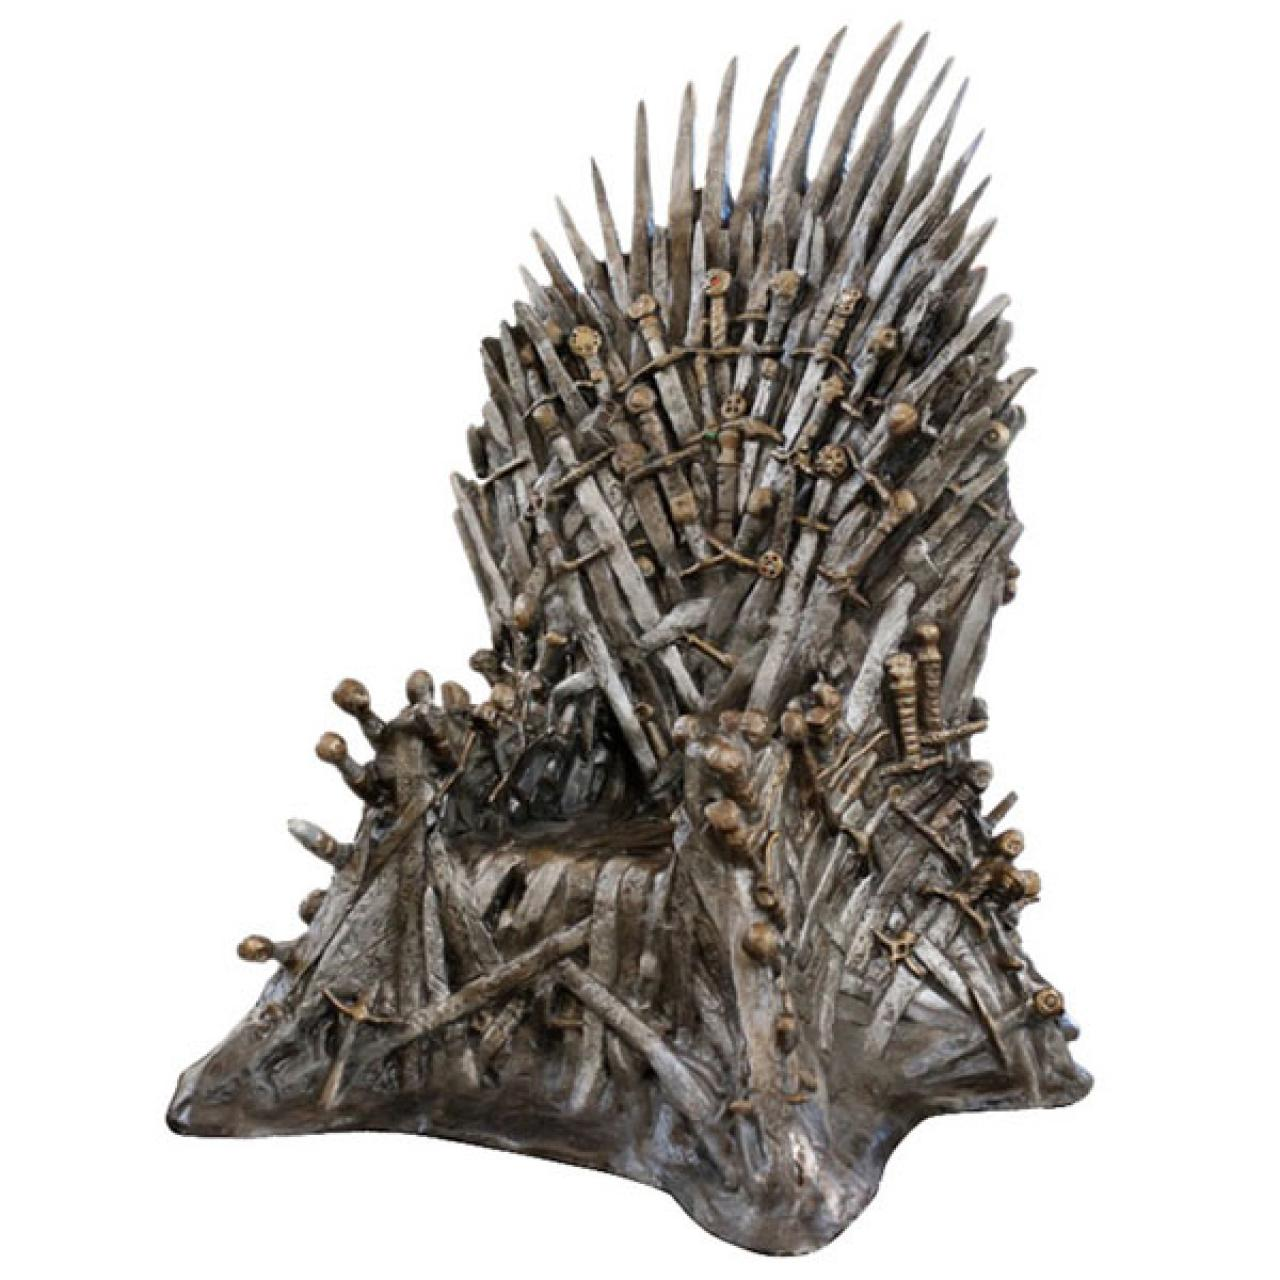 A life-sized Iron Throne + 27 more awesome Game of Thrones gifts ...